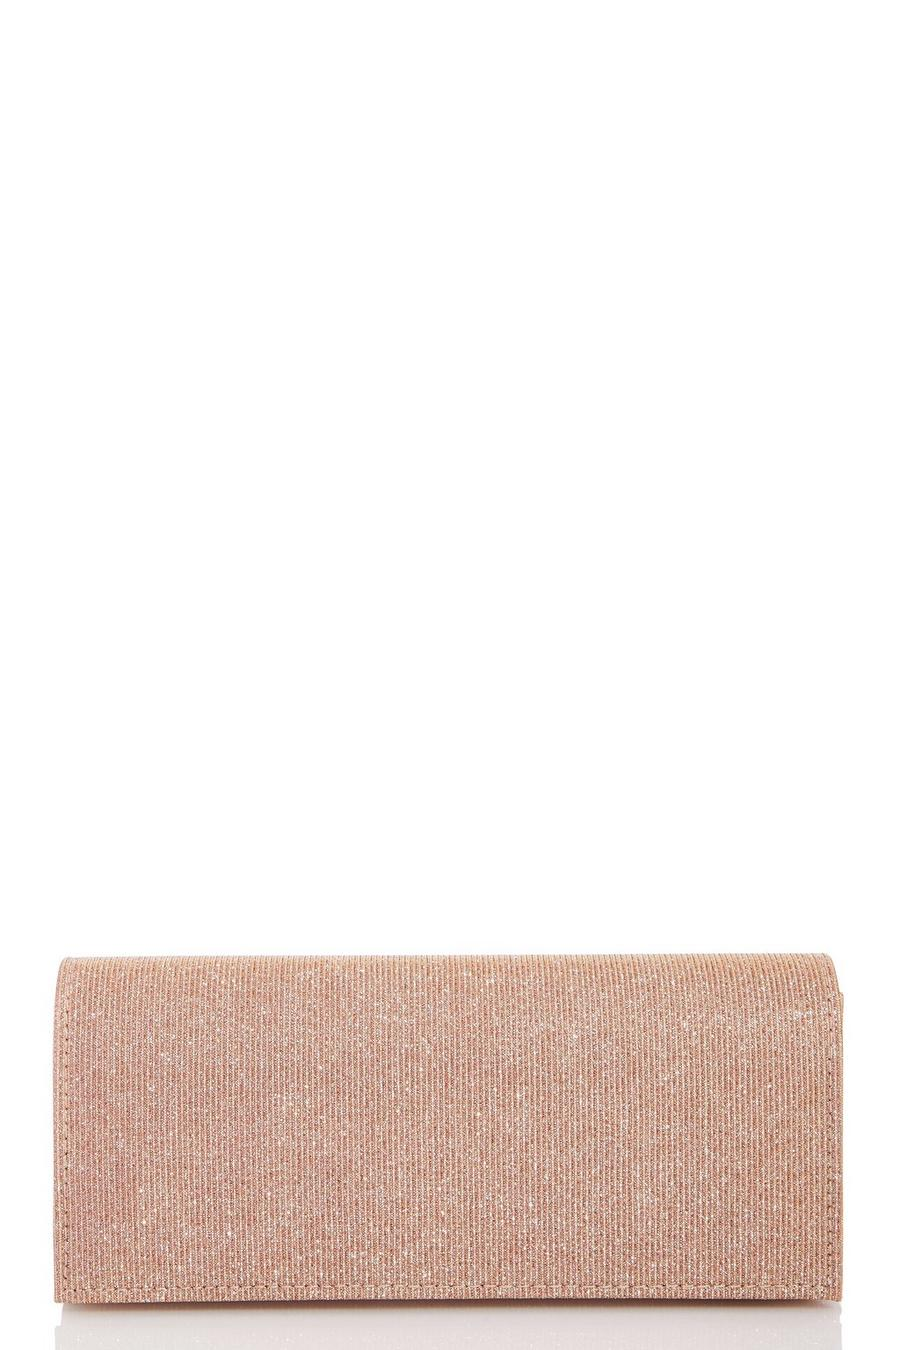 quality first 50-70%off half price Rose Gold Clutch Bag